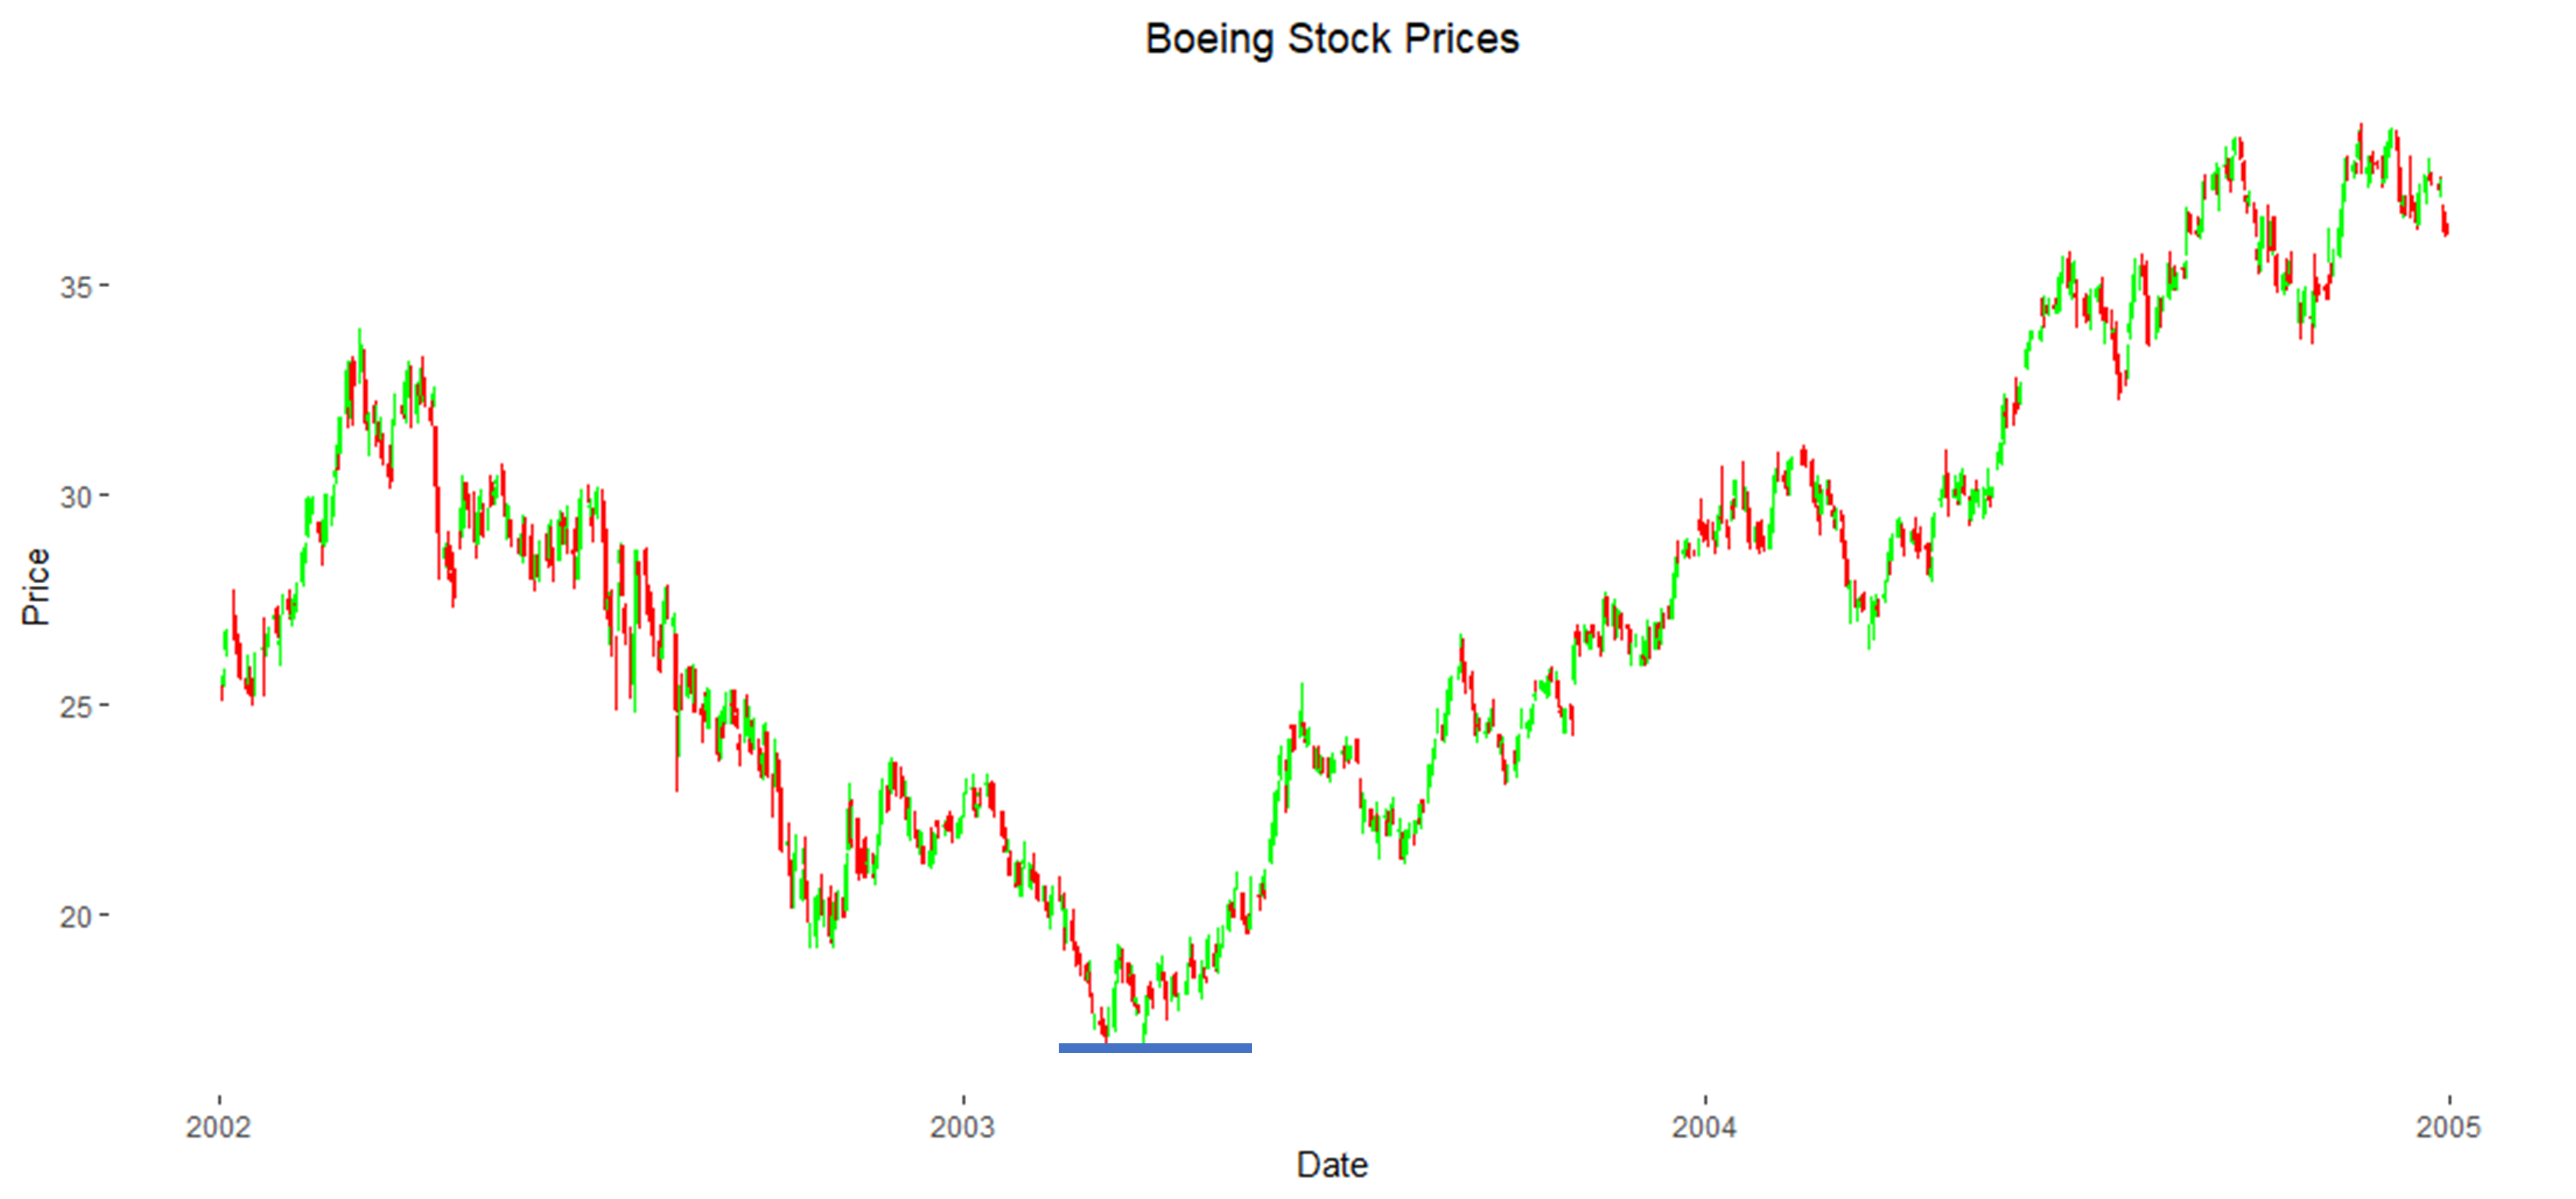 Boeing Stock Prices with Support Level